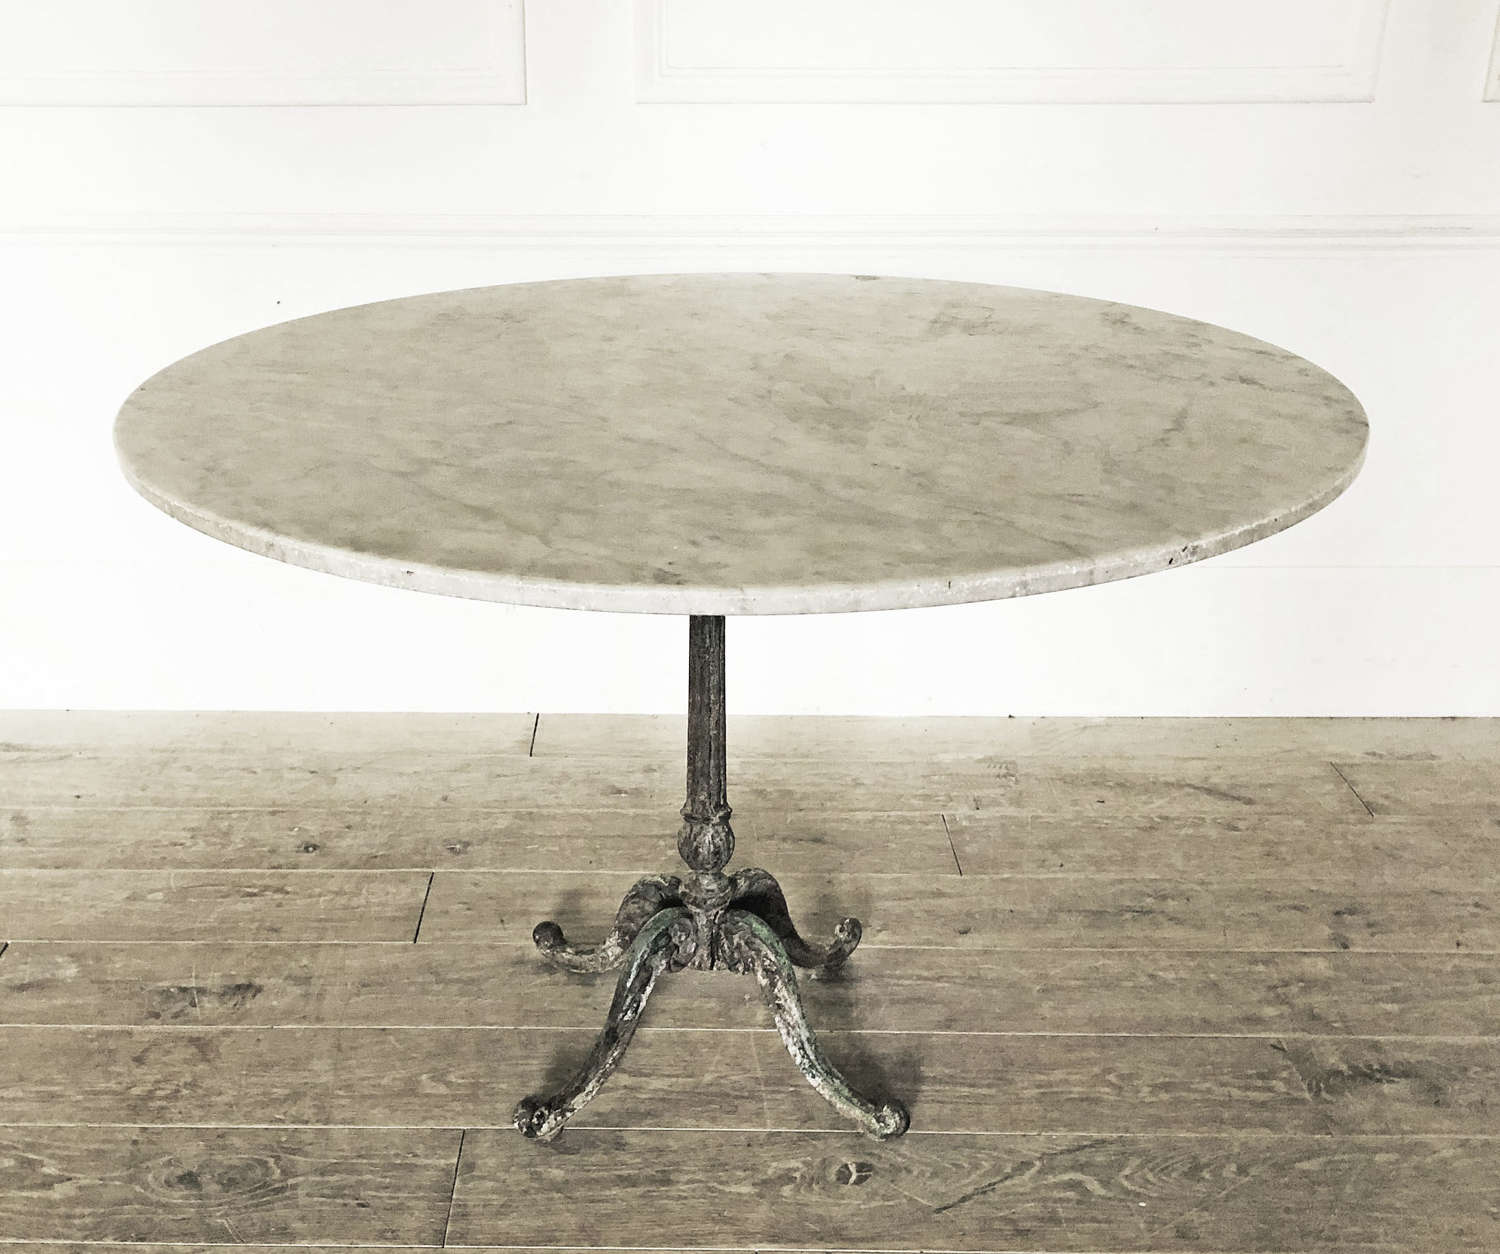 Large 19th c French Cast Iron Table with Round Marble Top - circa 1880